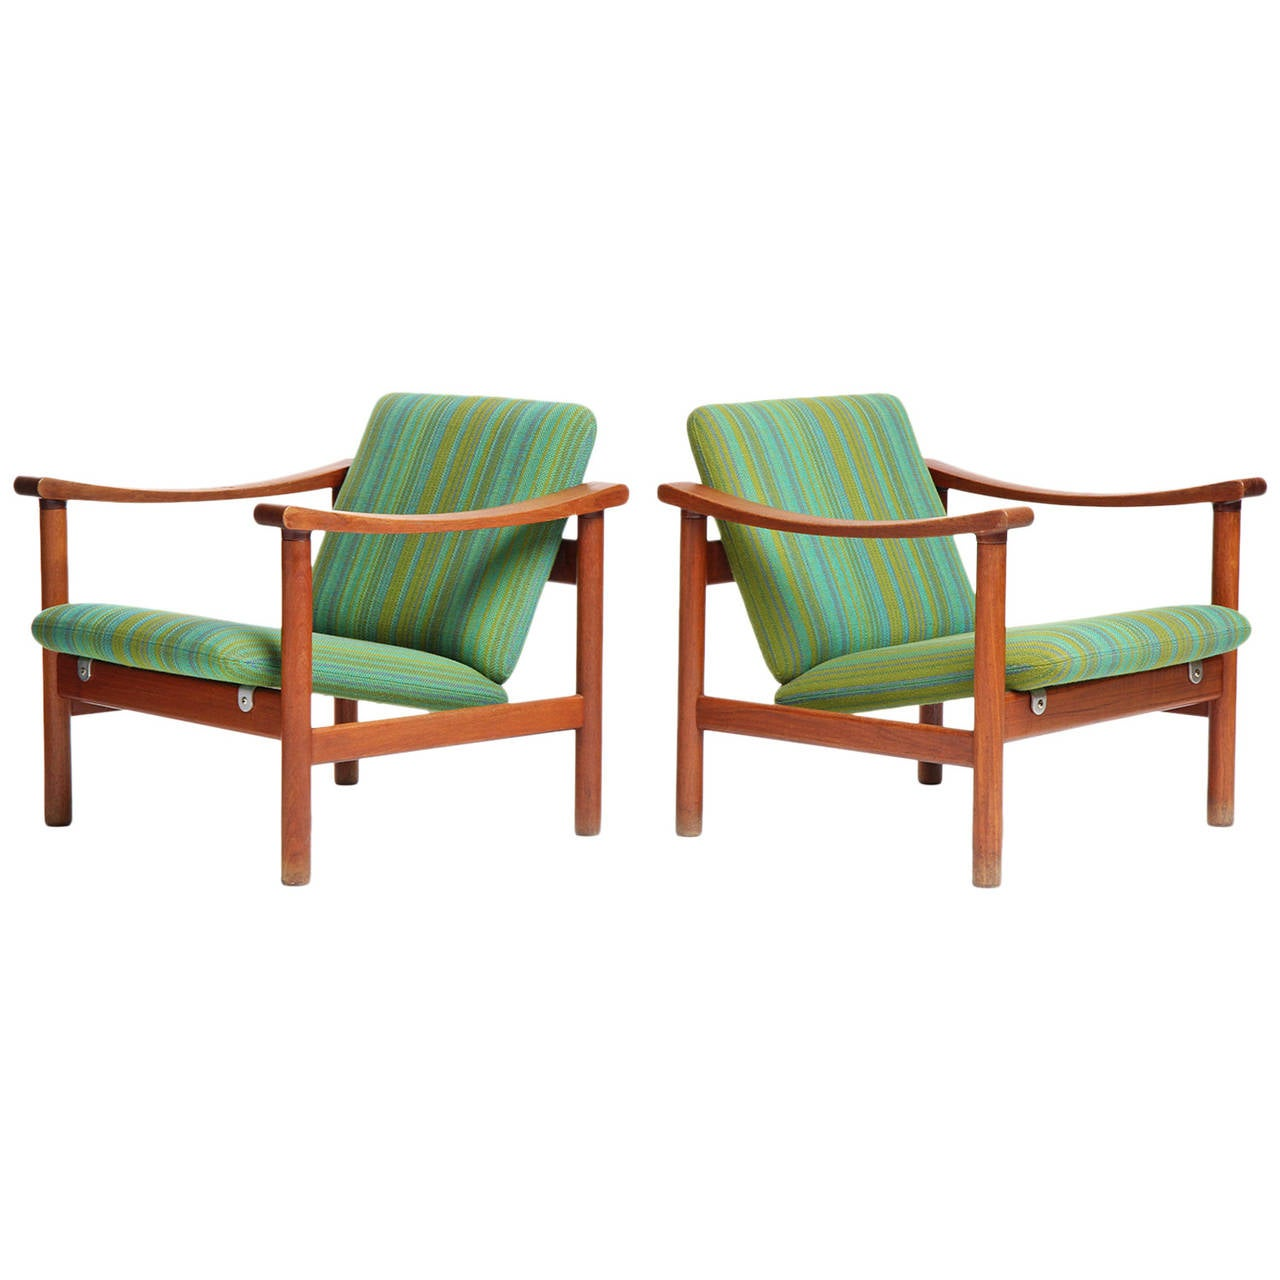 Pair of Lounge Chair by Hans J. Wegner